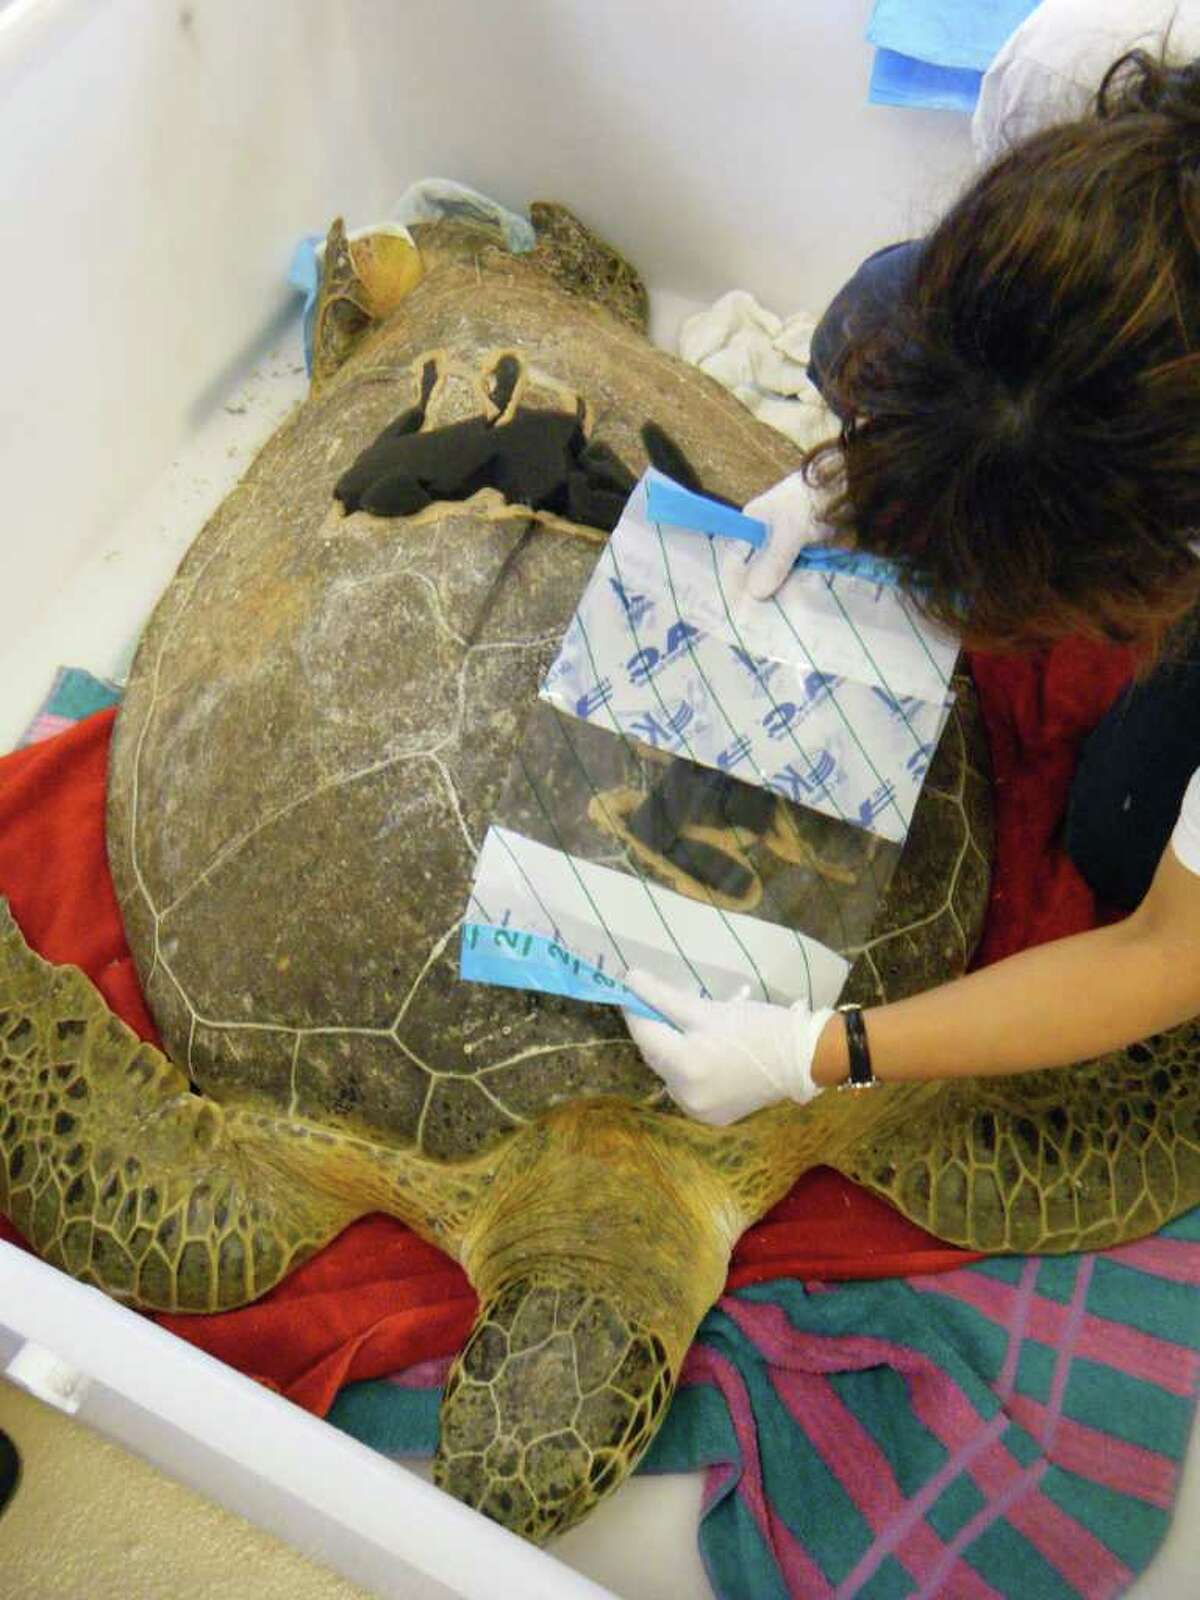 Medical teams from San Antonio-based Kinetic Concepts Inc., Martin Memorial Hospital and the Loggerhead Marinelife Center collaborate to determine the best way to apply a bandage to Andre the turtle.